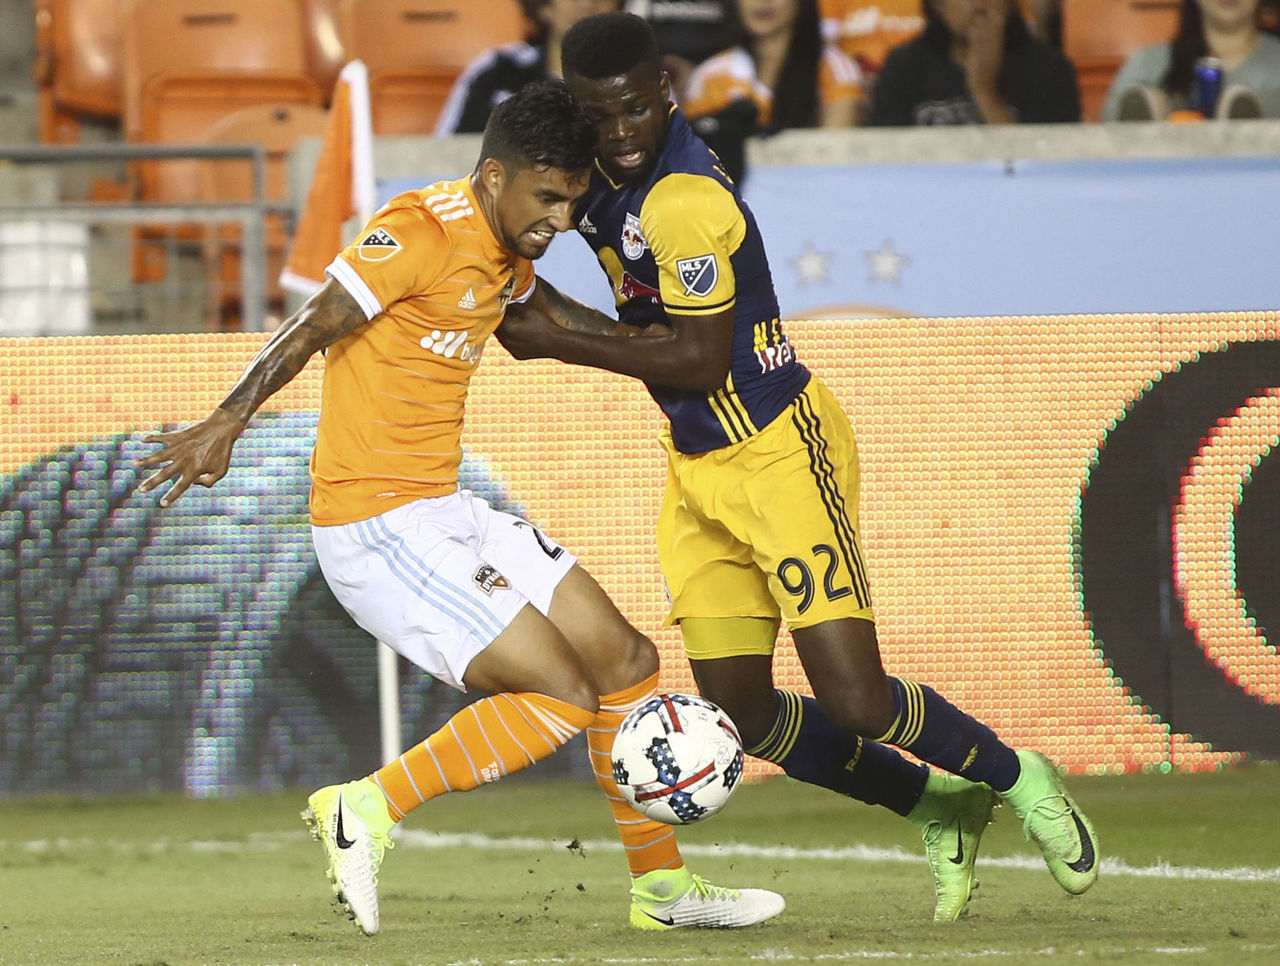 Cropped_2017-04-02t025556z_1243159841_nocid_rtrmadp_3_mls-new-york-red-bulls-at-houston-dynamo